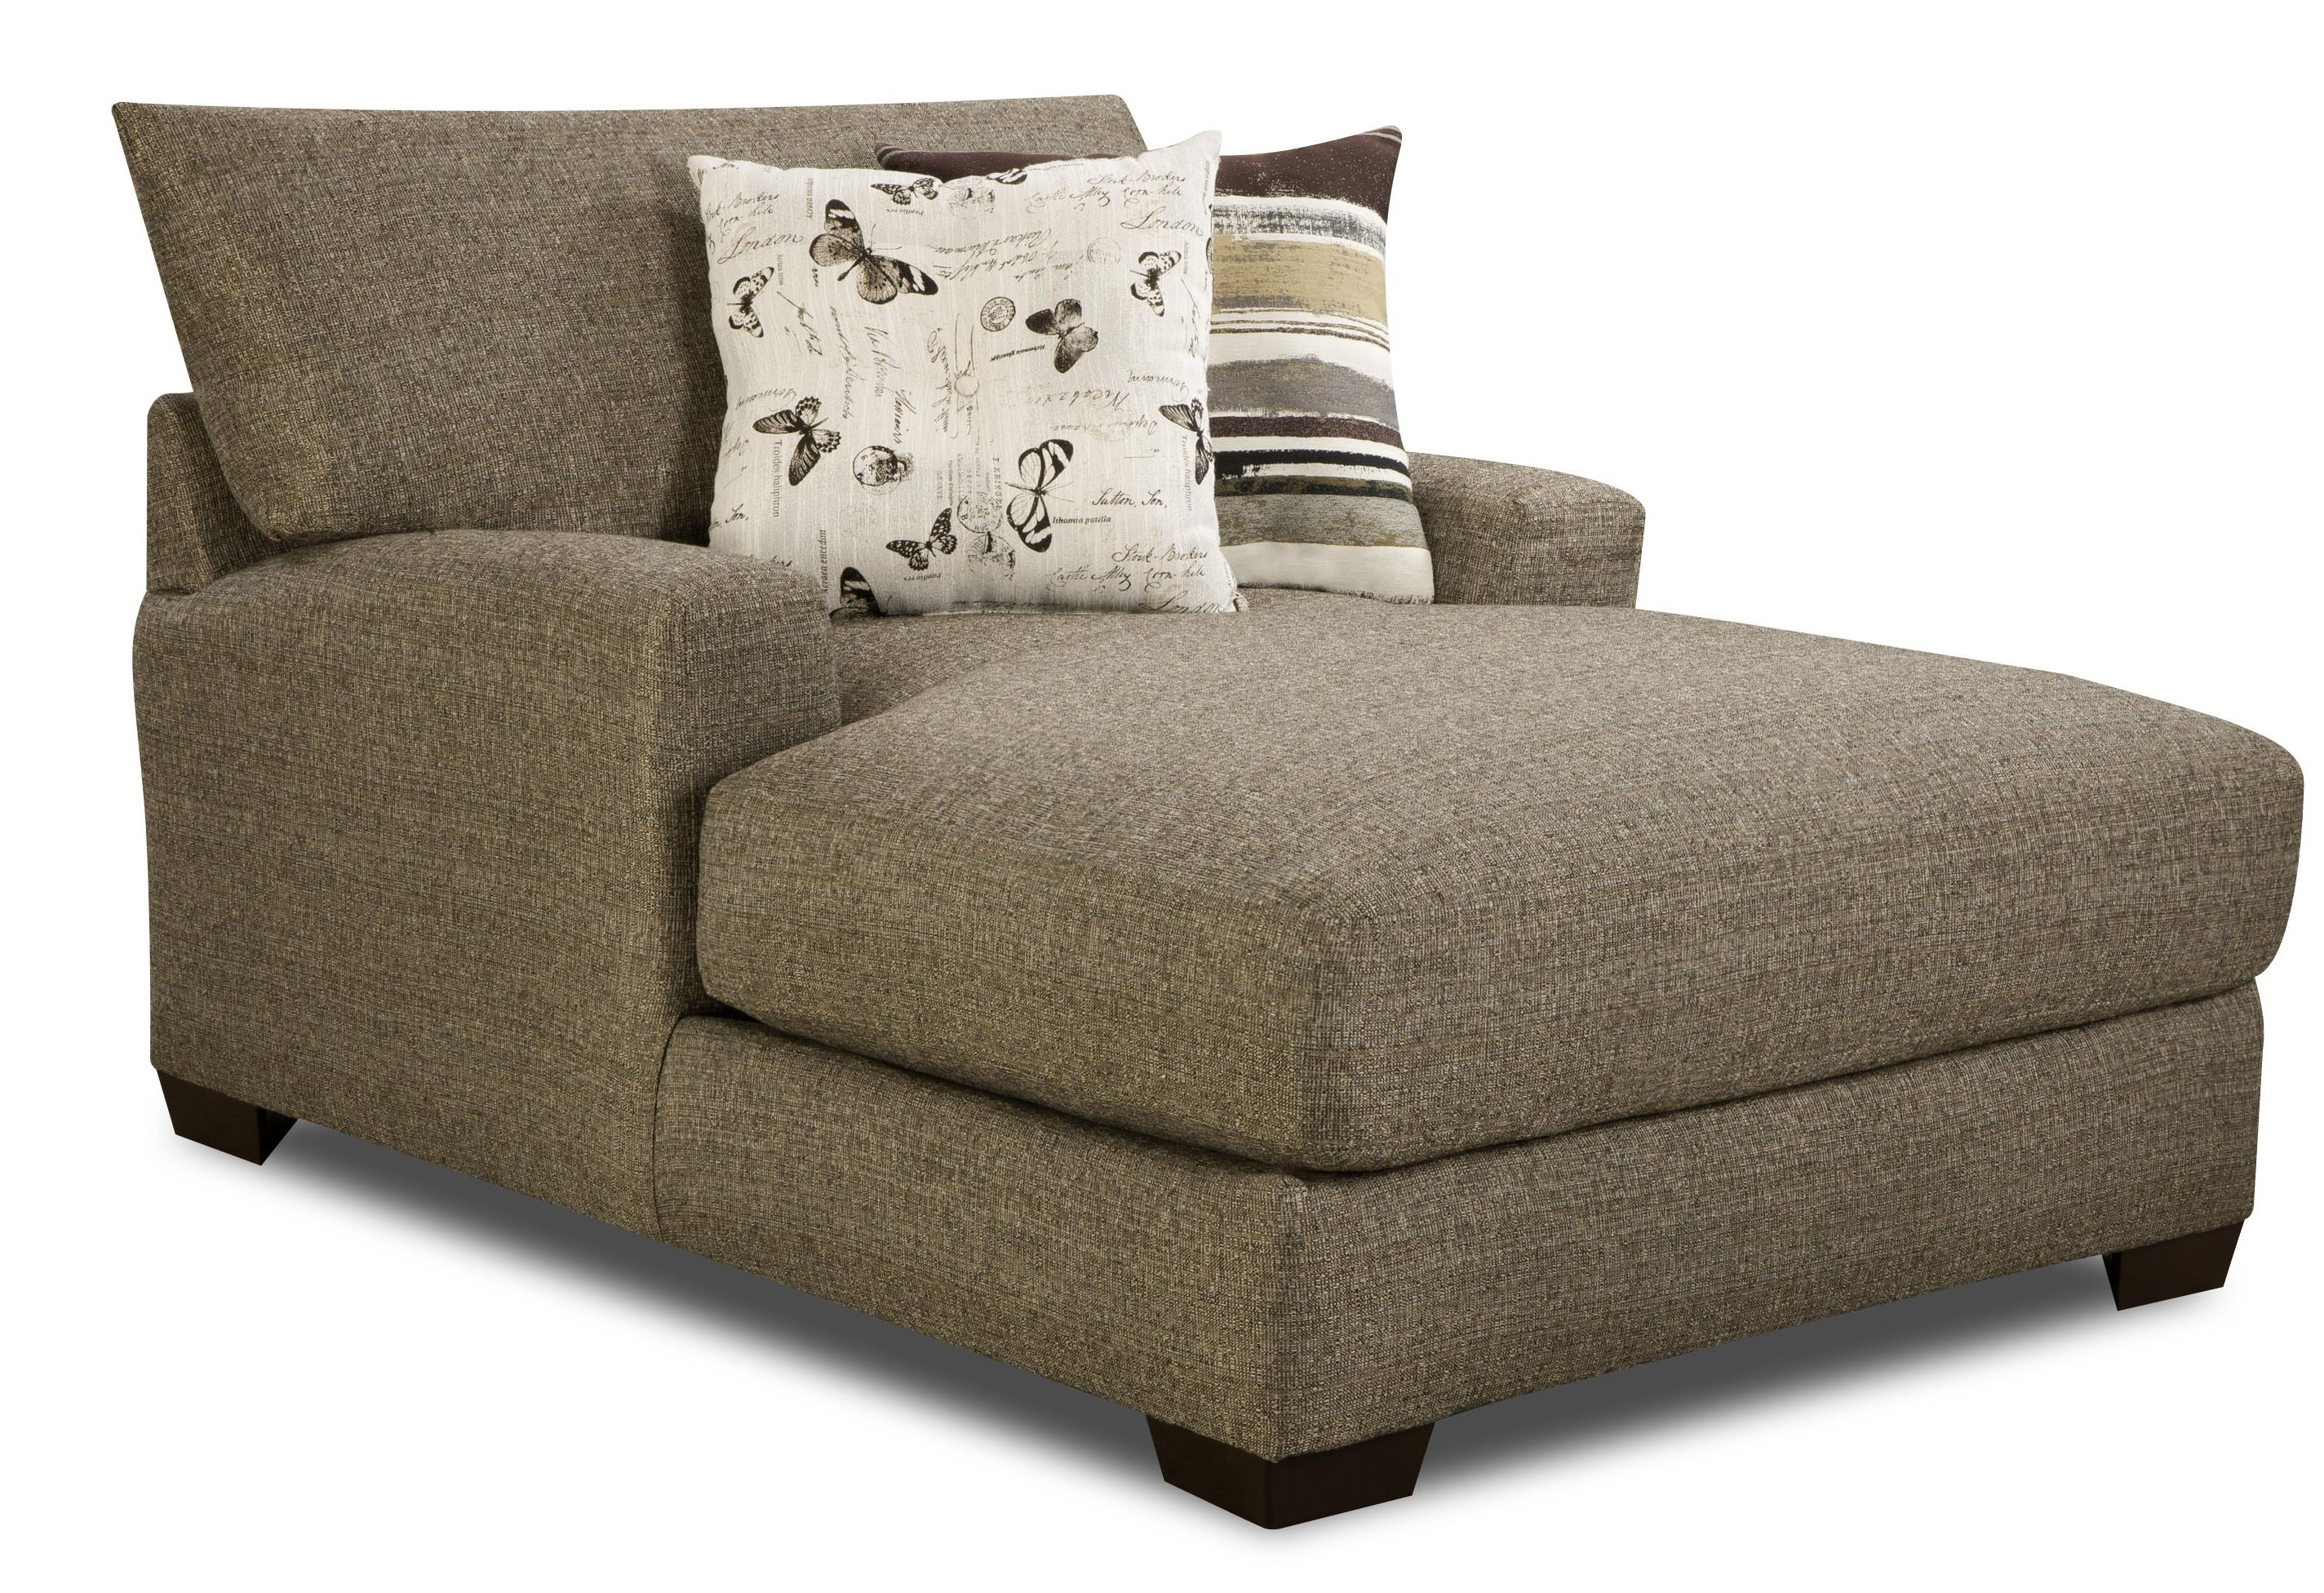 Furniture Microfiber Chaise Lounge For Comfortable Sofa Design With Regard To Lounge Sofas And Chairs (Image 8 of 15)